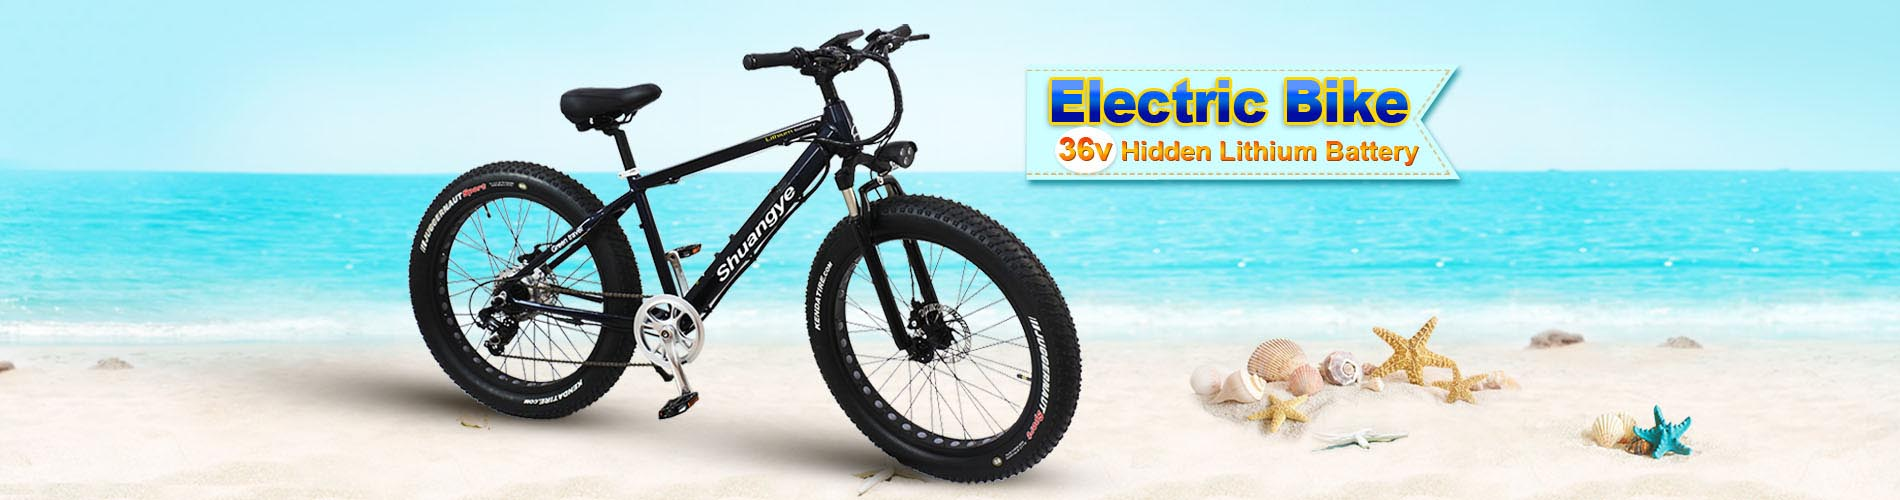 20 inch best beach cruiser electric fat bike for sale A7AM20